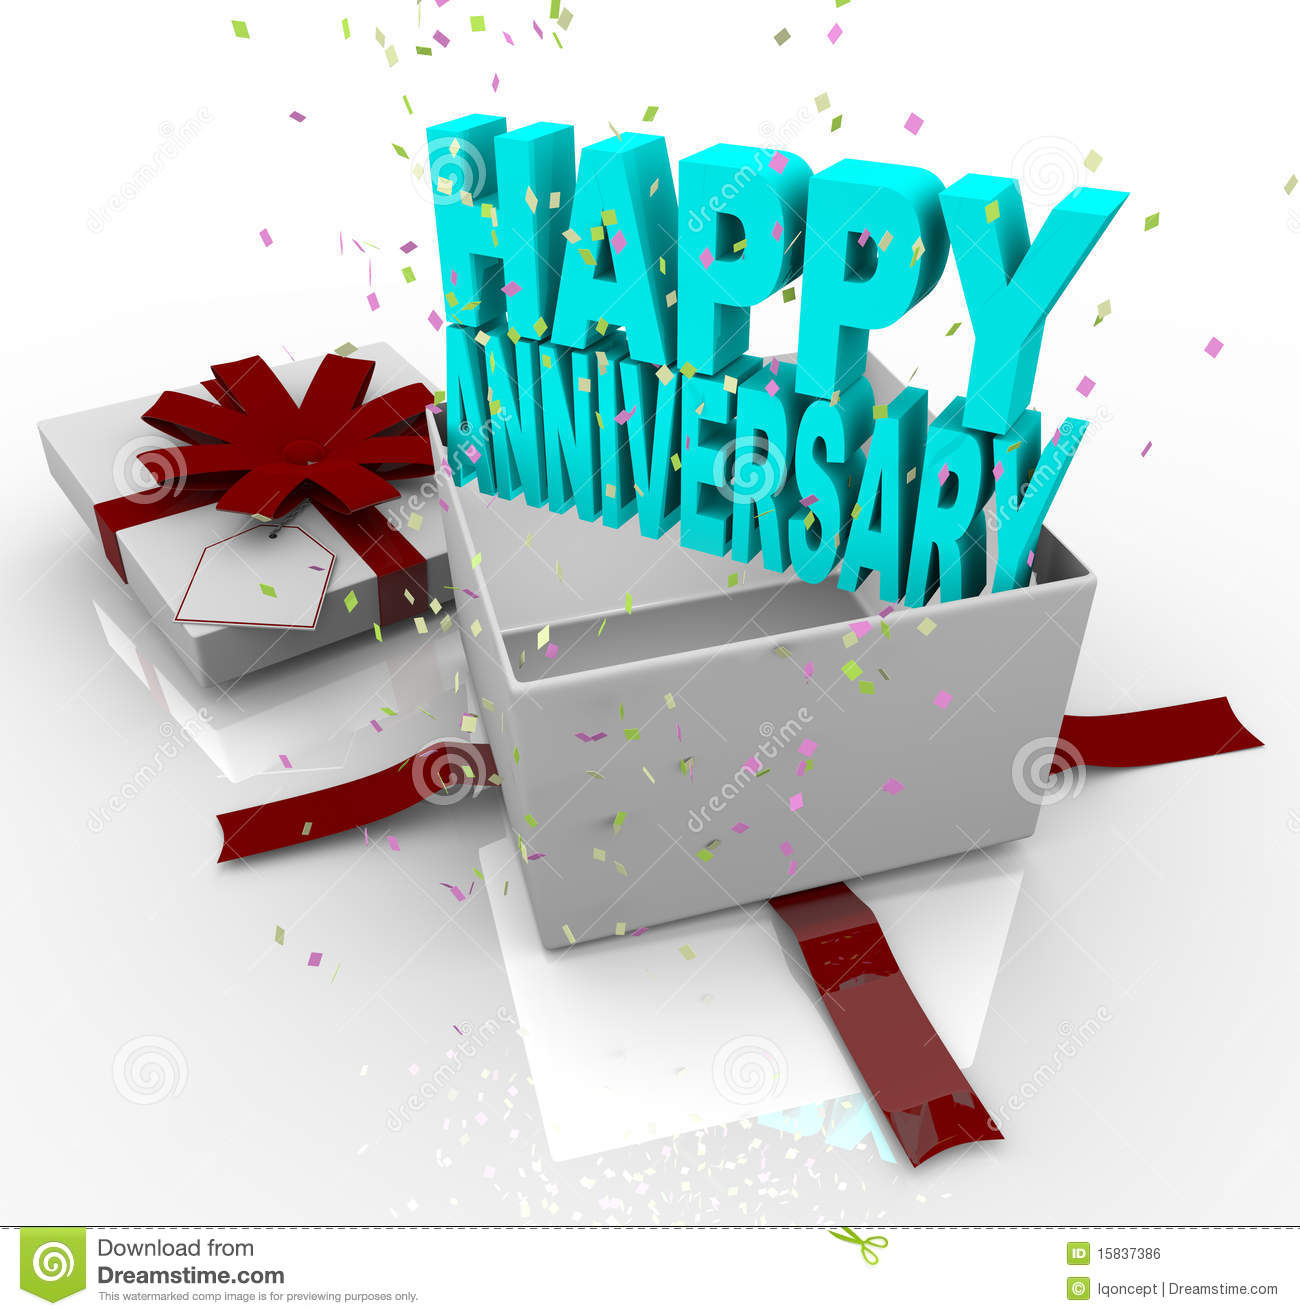 Happy Anniversary Images For Work.